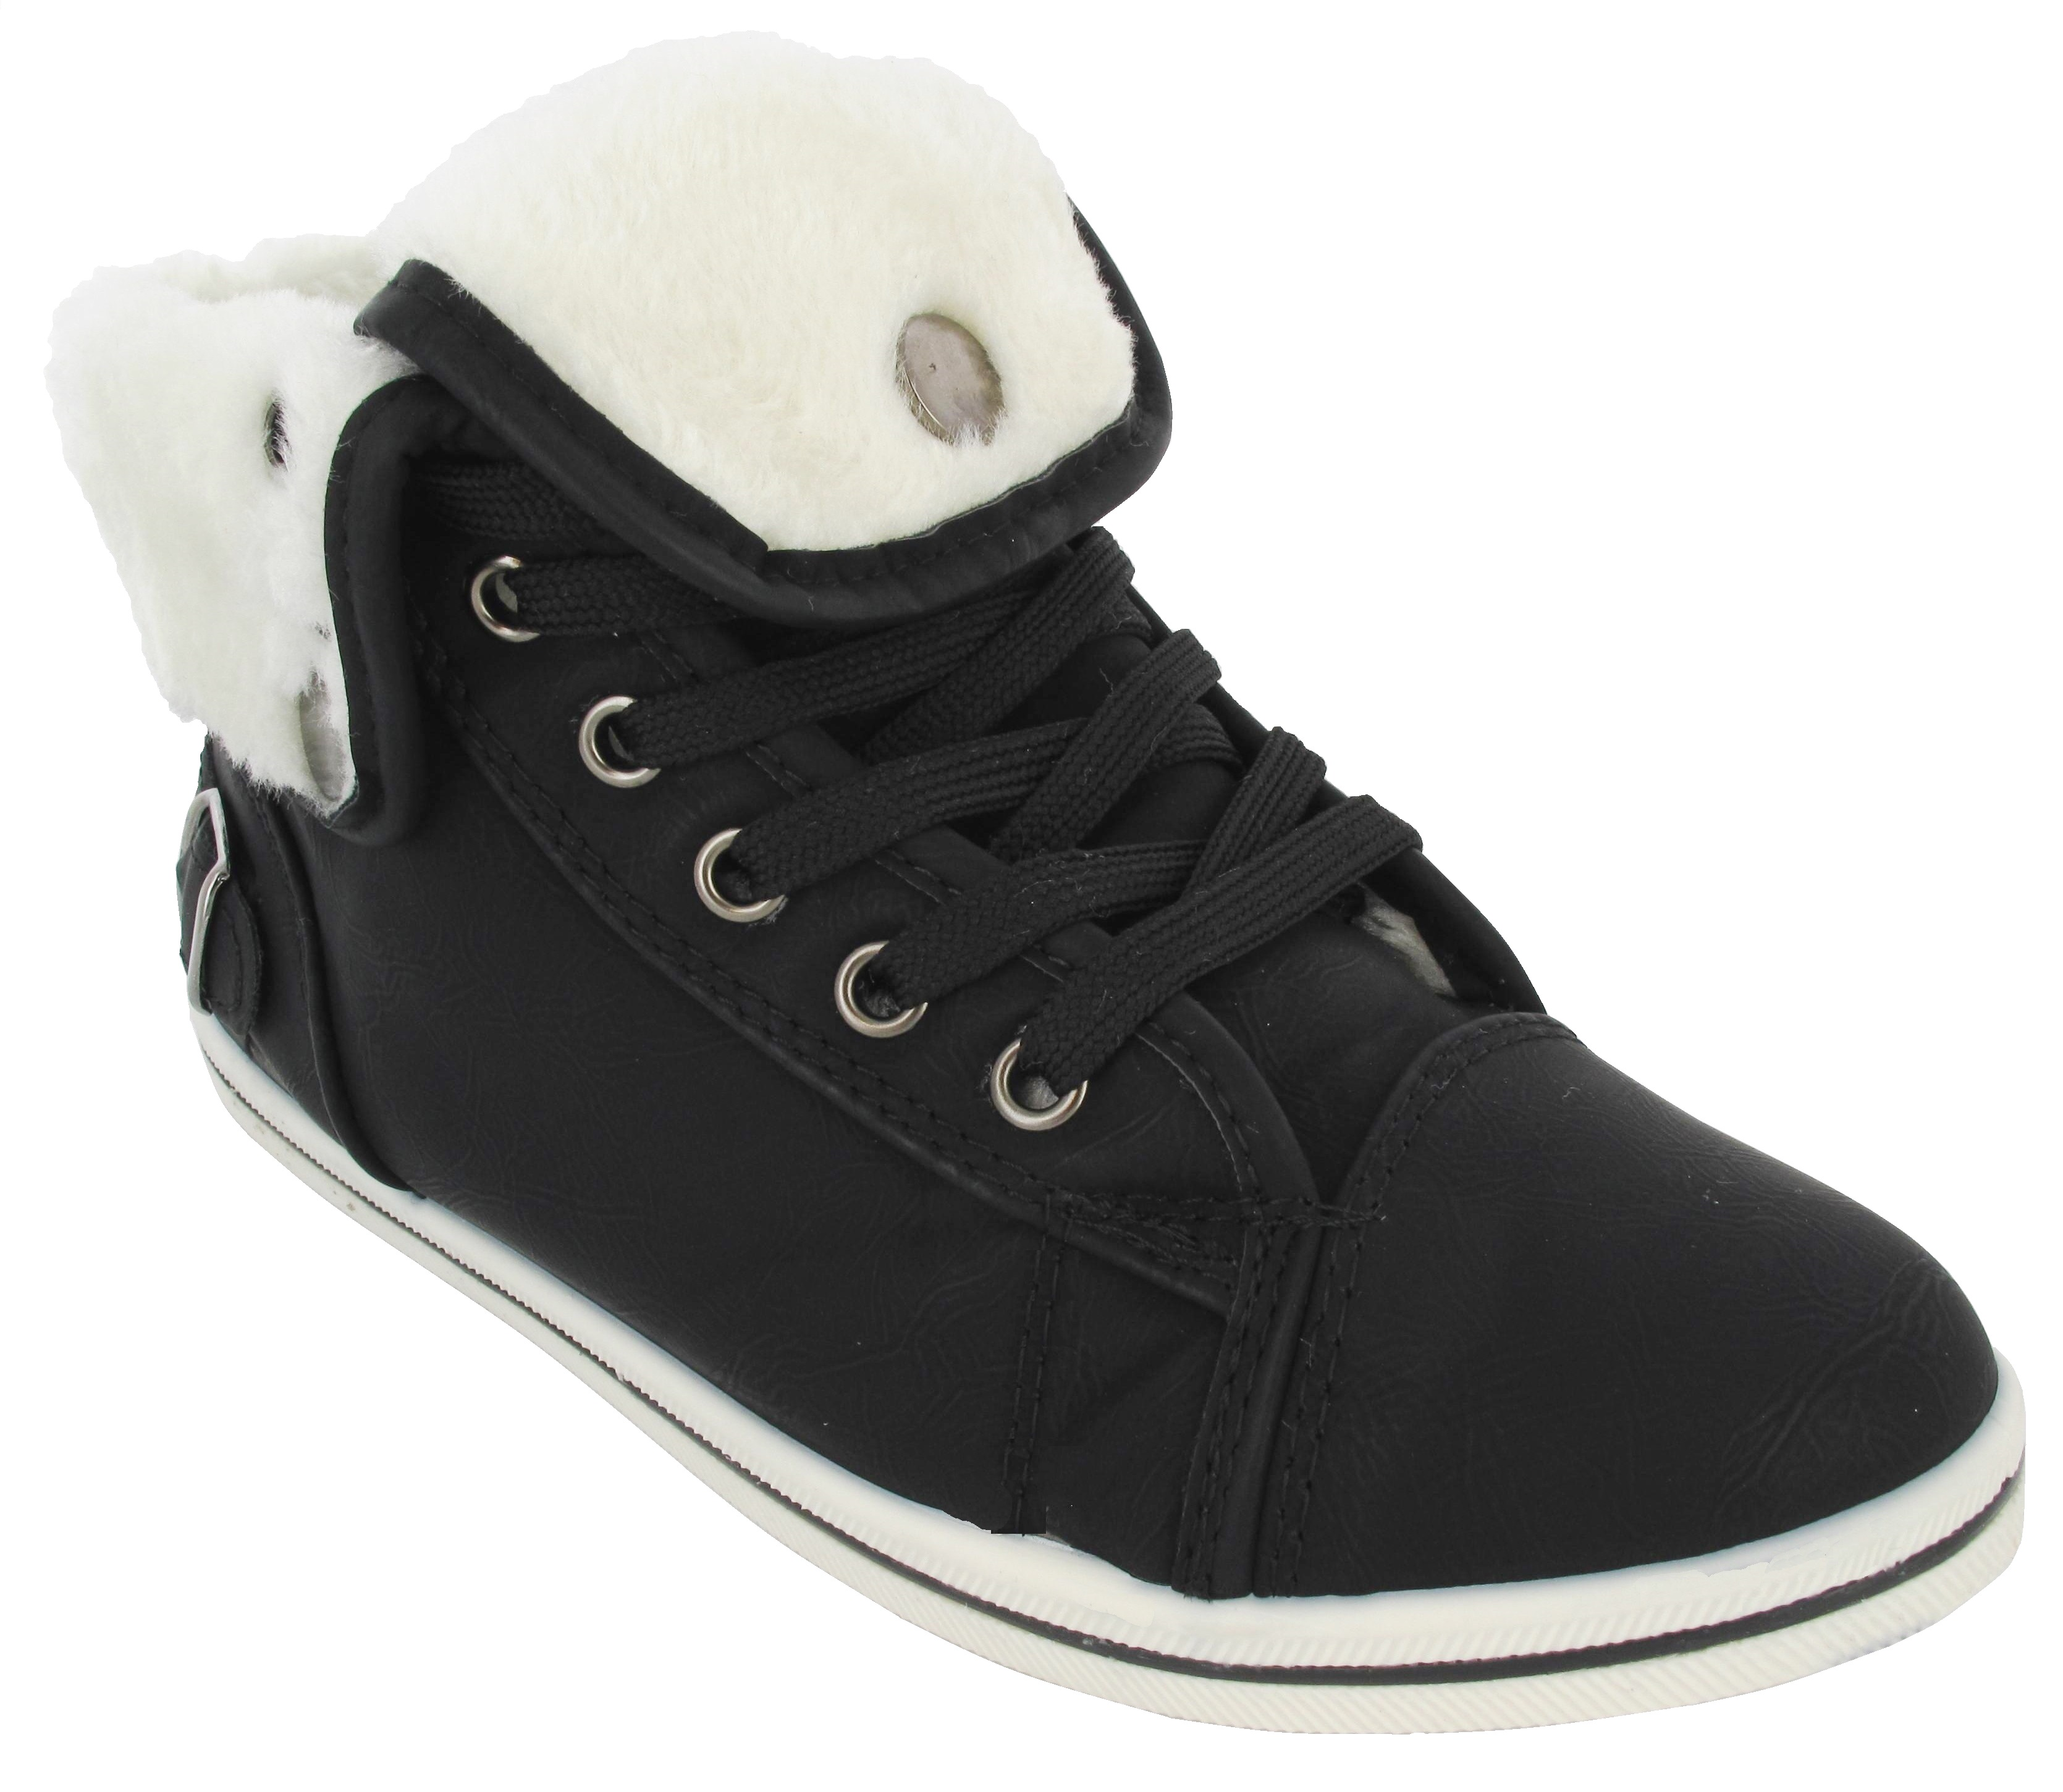 LADIES GIRLS HI HIGH TOP TRAINERS FUR LINED WINTER PUMP FLAT SHOES ANKLE BOOT NE